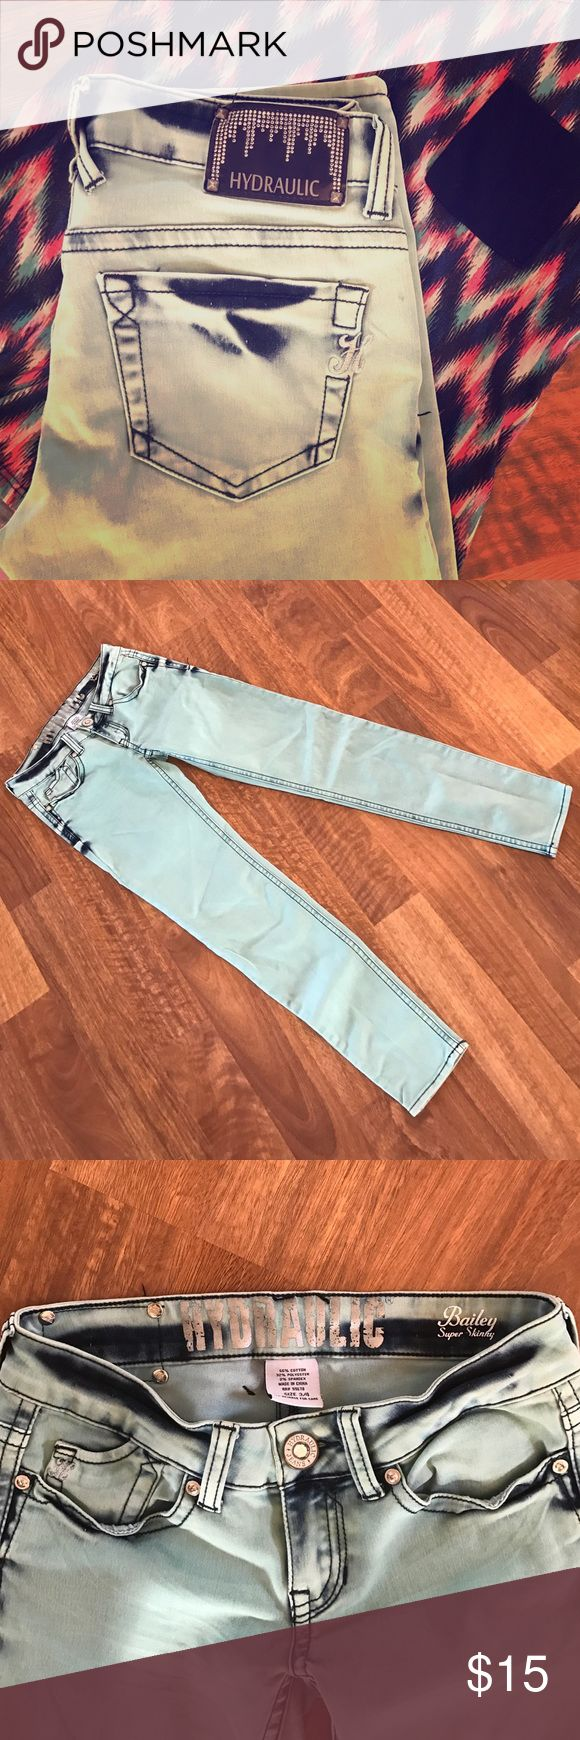 Hydraulic Jeans Absolutely trendy jeans!!! These distressed dyed jeans are mint green, best represented in 2nd pic, w/ jeans blue color dye remaining in darker areas. Great condition. Size 3/4 Hydraulic brand. Love them!!! Bundle and save!!!  Hydraulic Jeans Skinny